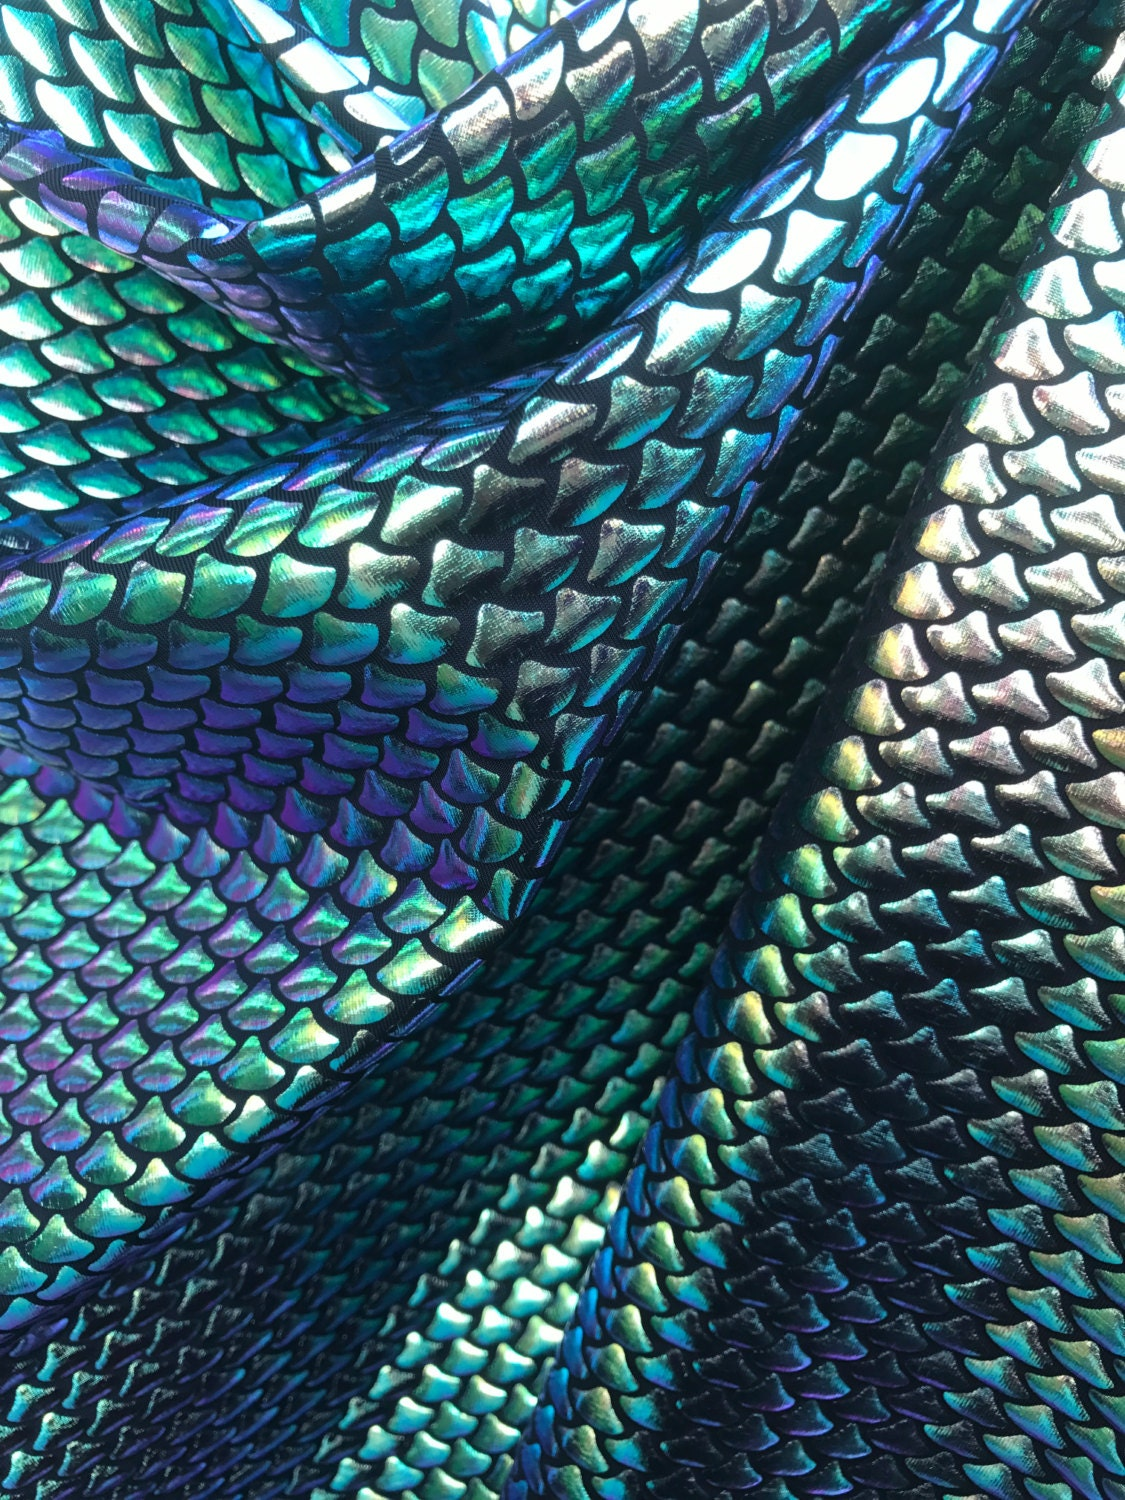 New Mini Iridecent Tone Mermaid Fish Scales Fabric Sold By